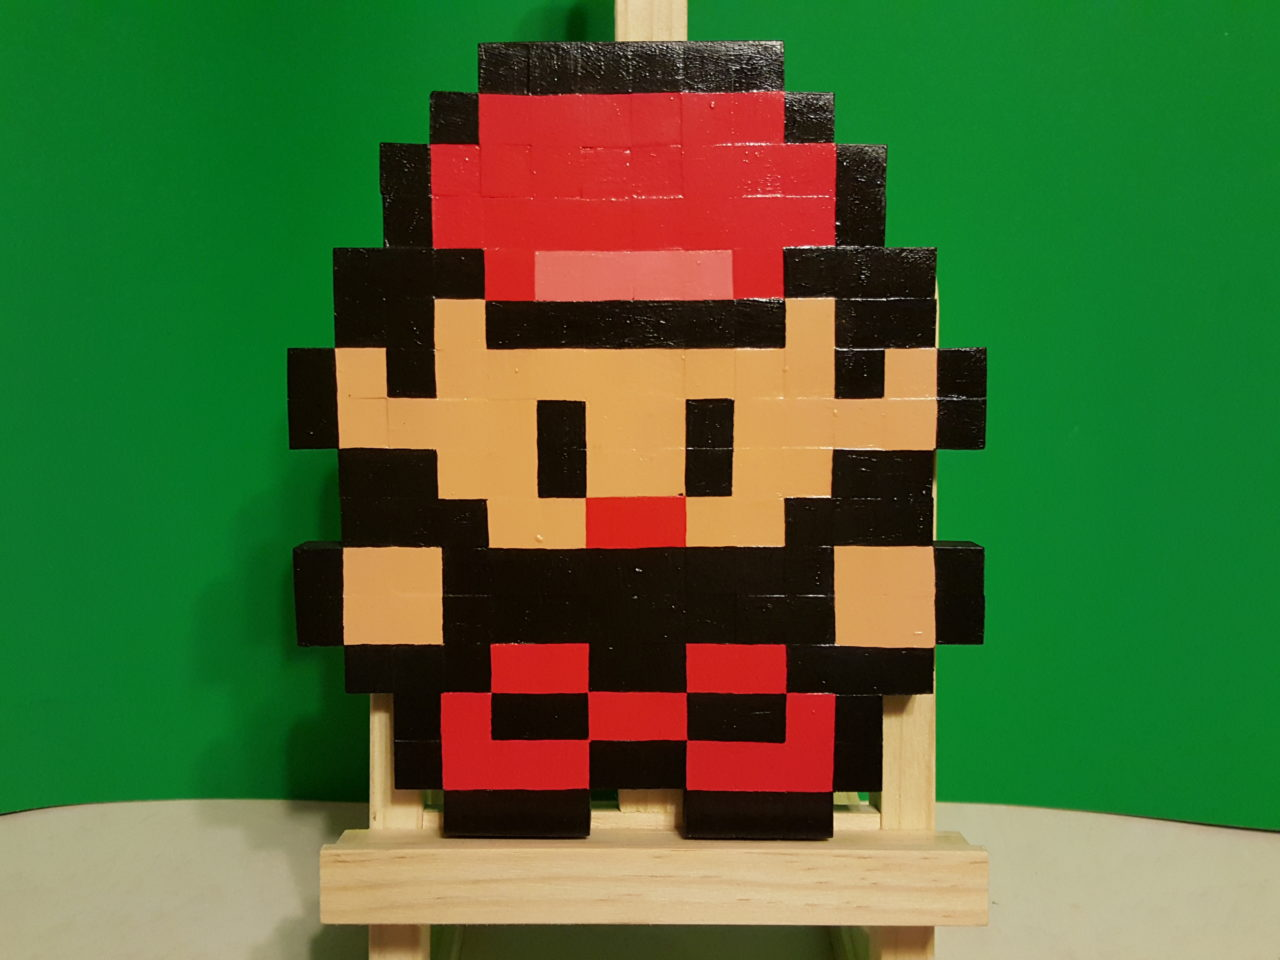 Pokemon Trainer Red Wooden Sprite Plaque by MrGilder